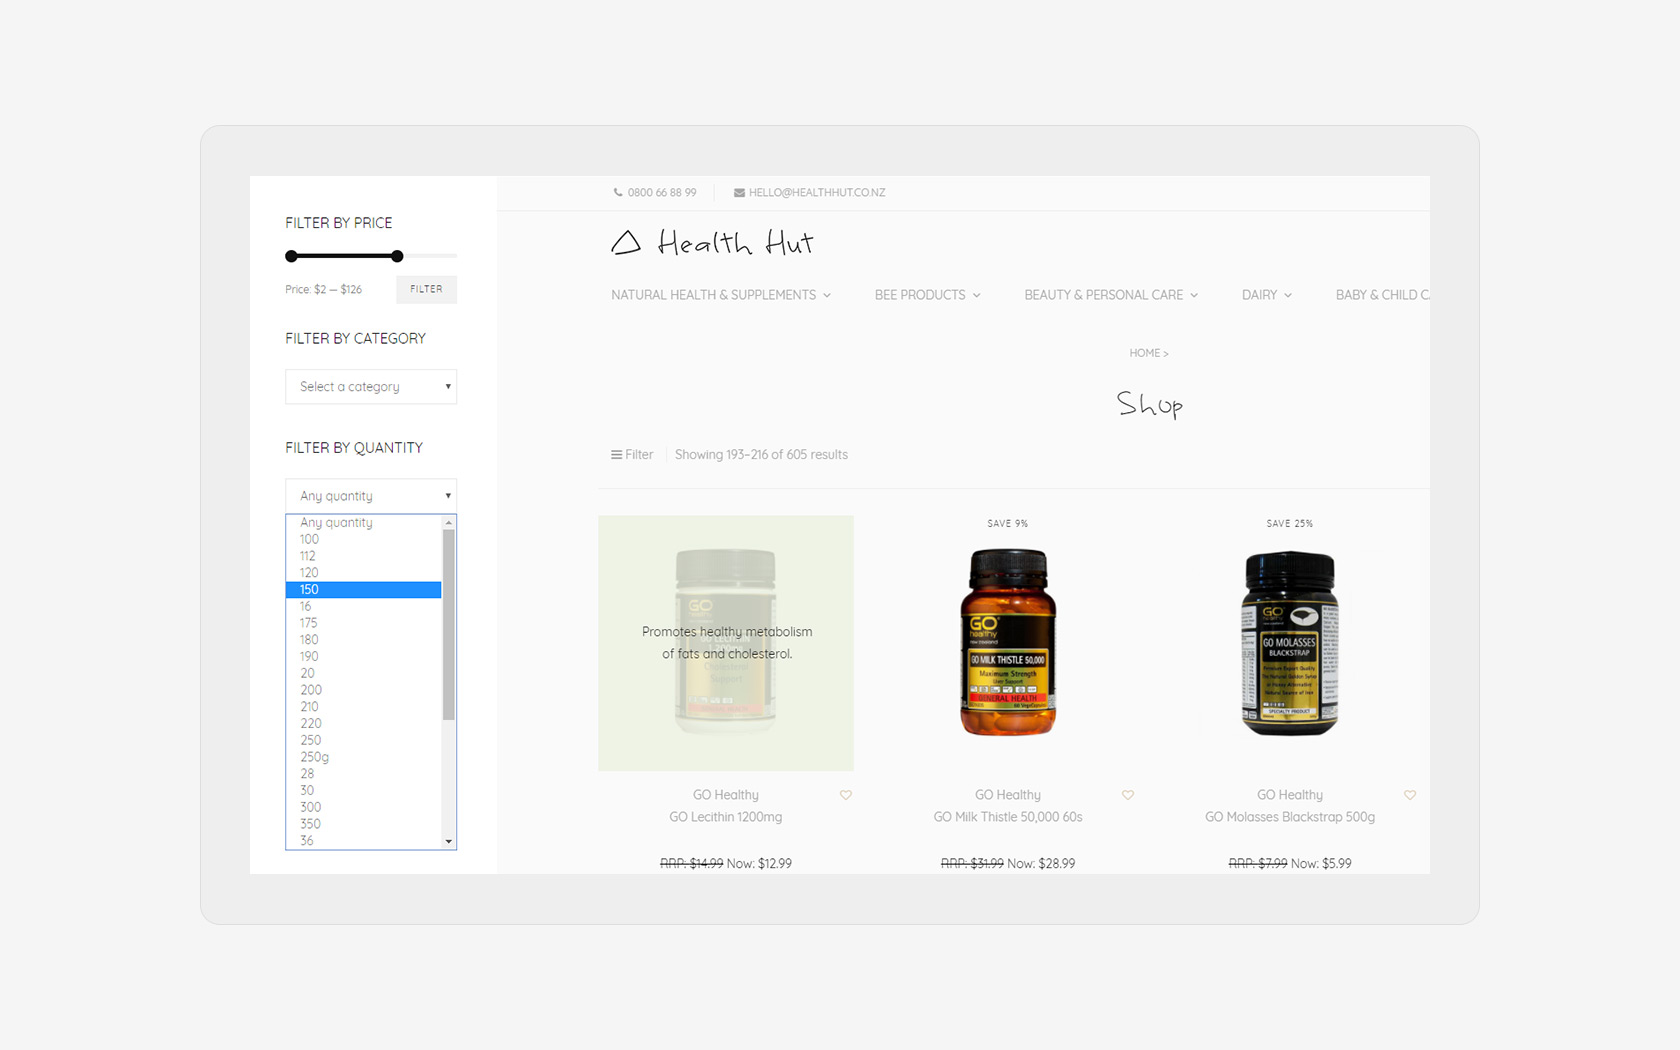 Healthhut Desktop Bee Products